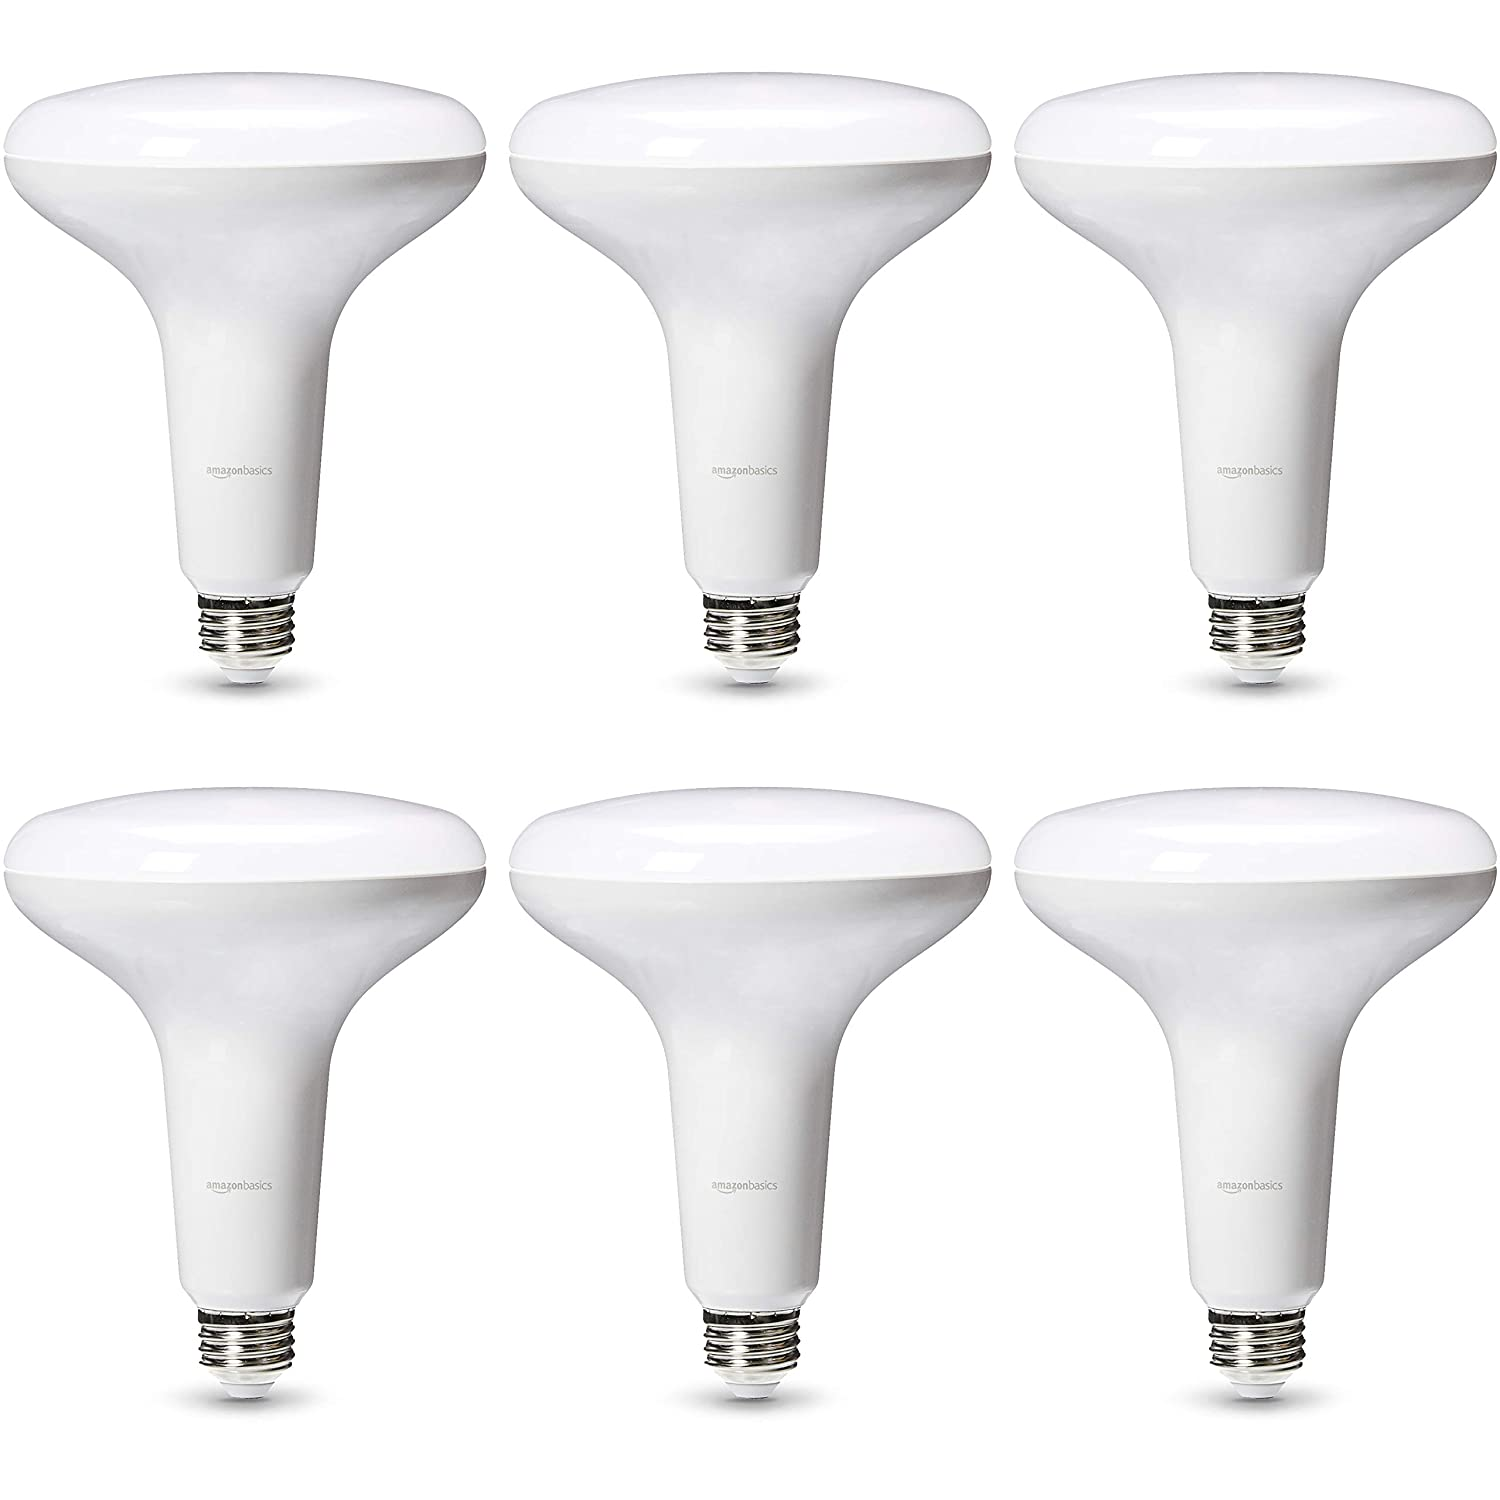 AmazonBasics Commercial Grade LED Light Bulb | 75-Watt Equivalent, BR40, Soft White, Dimmable, 6-Pack